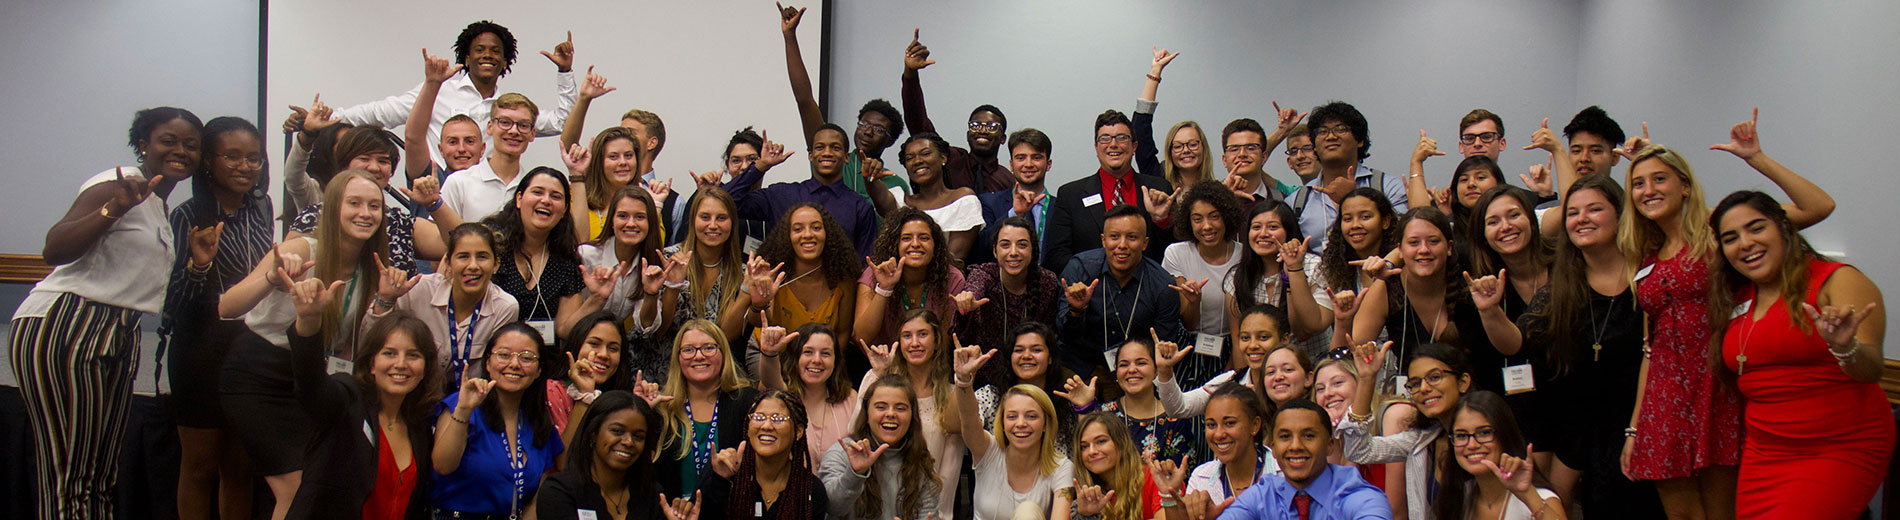 photo shows FGCU students